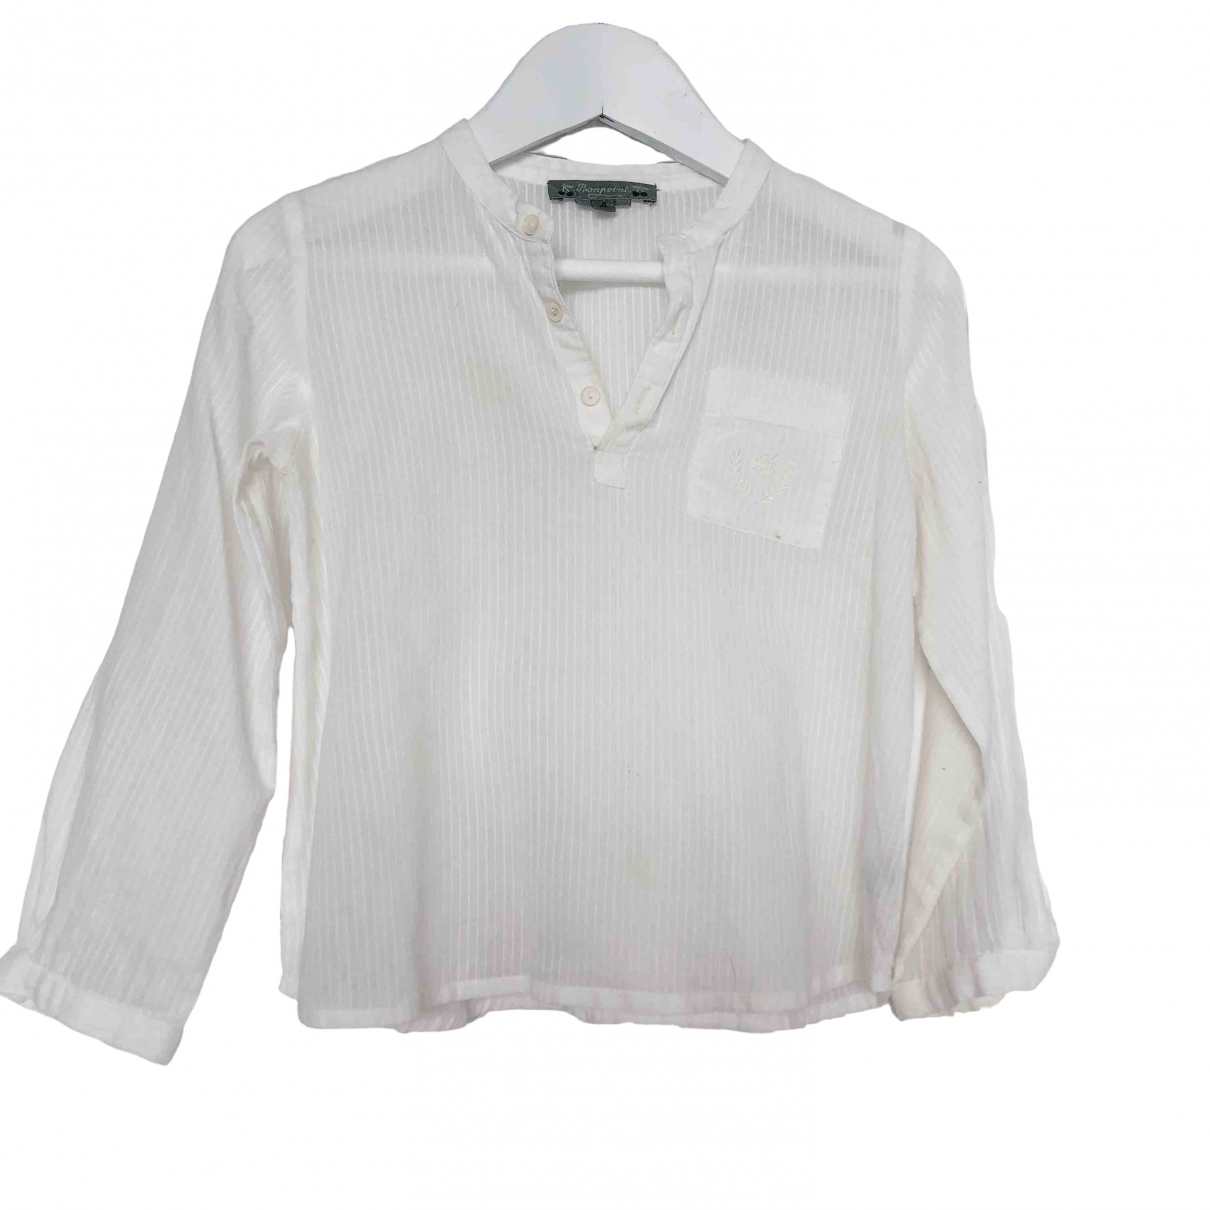 Bonpoint \N White Cotton  top for Kids 4 years - up to 102cm FR